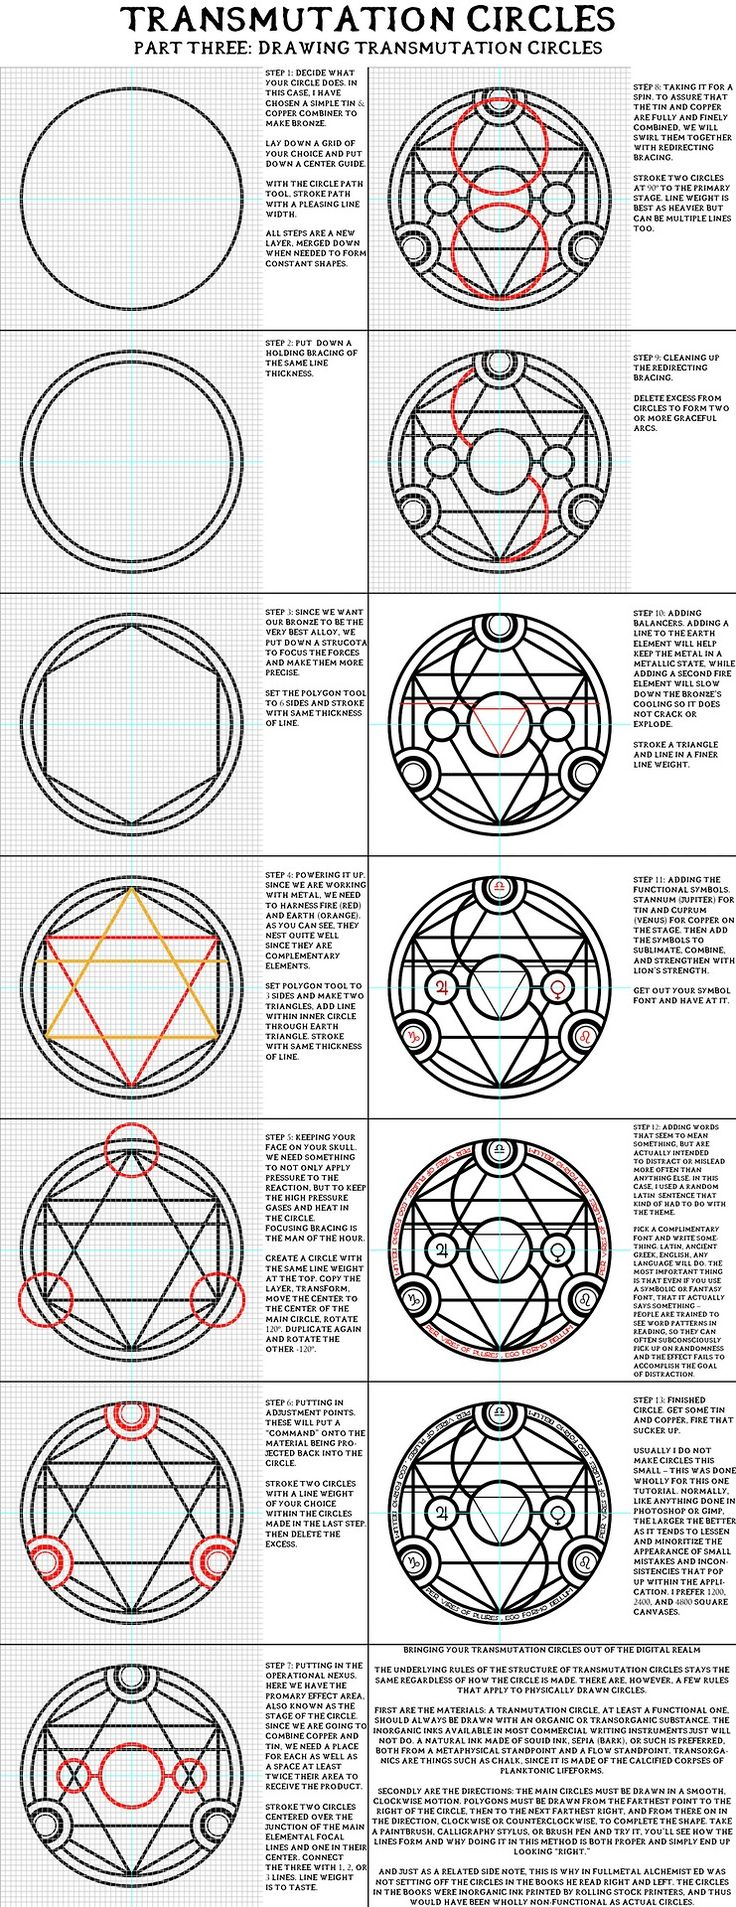 Transmutation circles Drawing